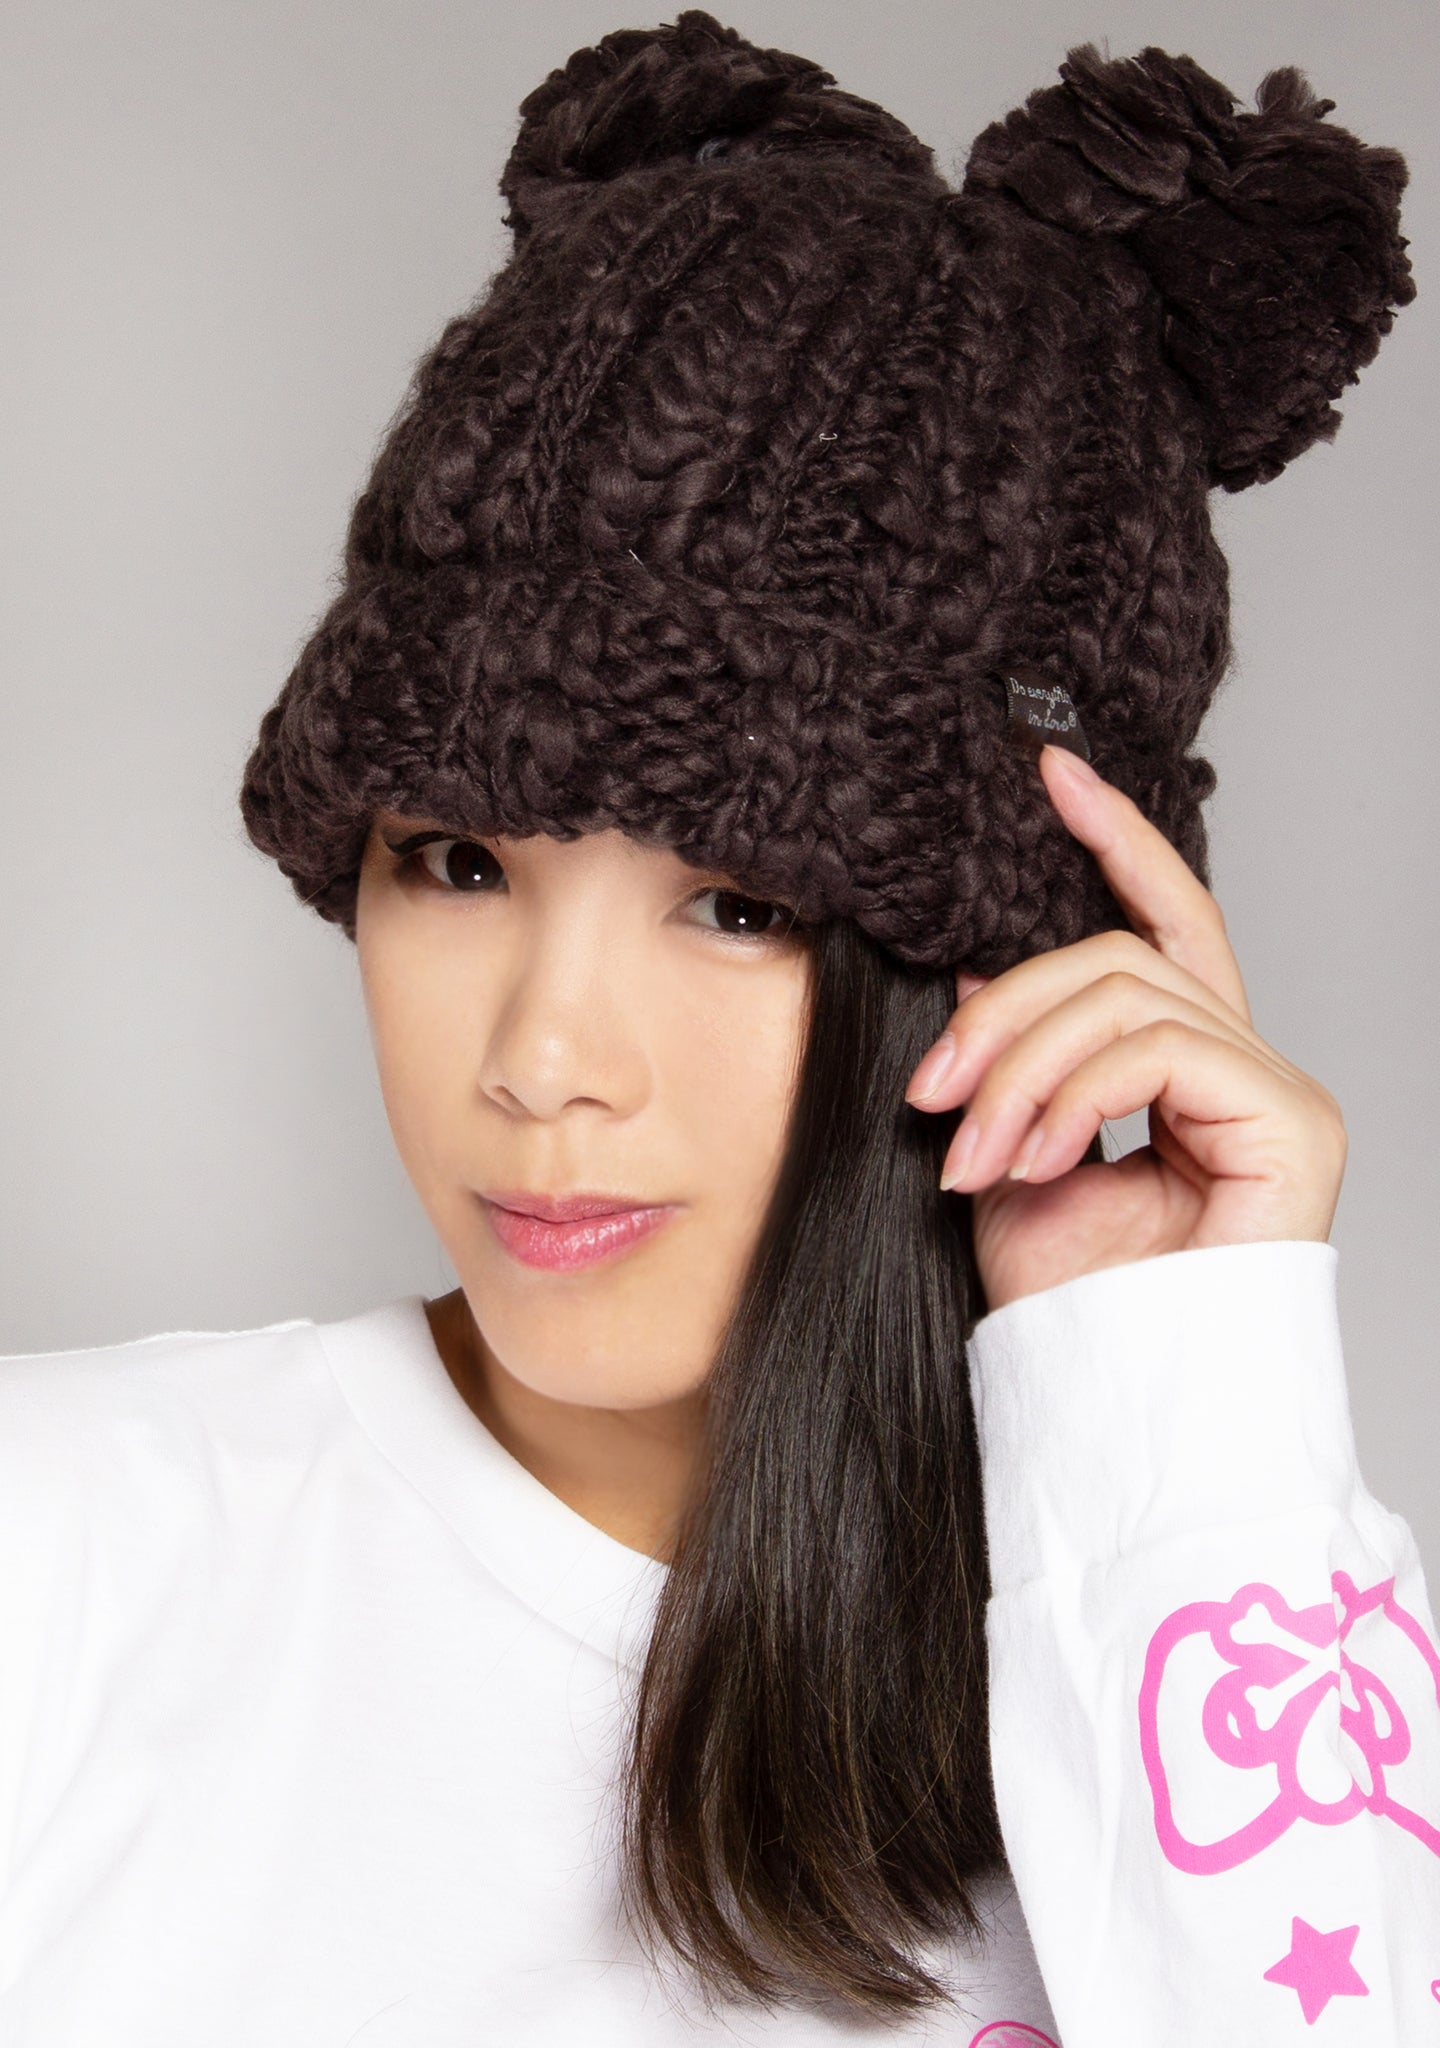 Teddy Bear Knit Beanie in Grey